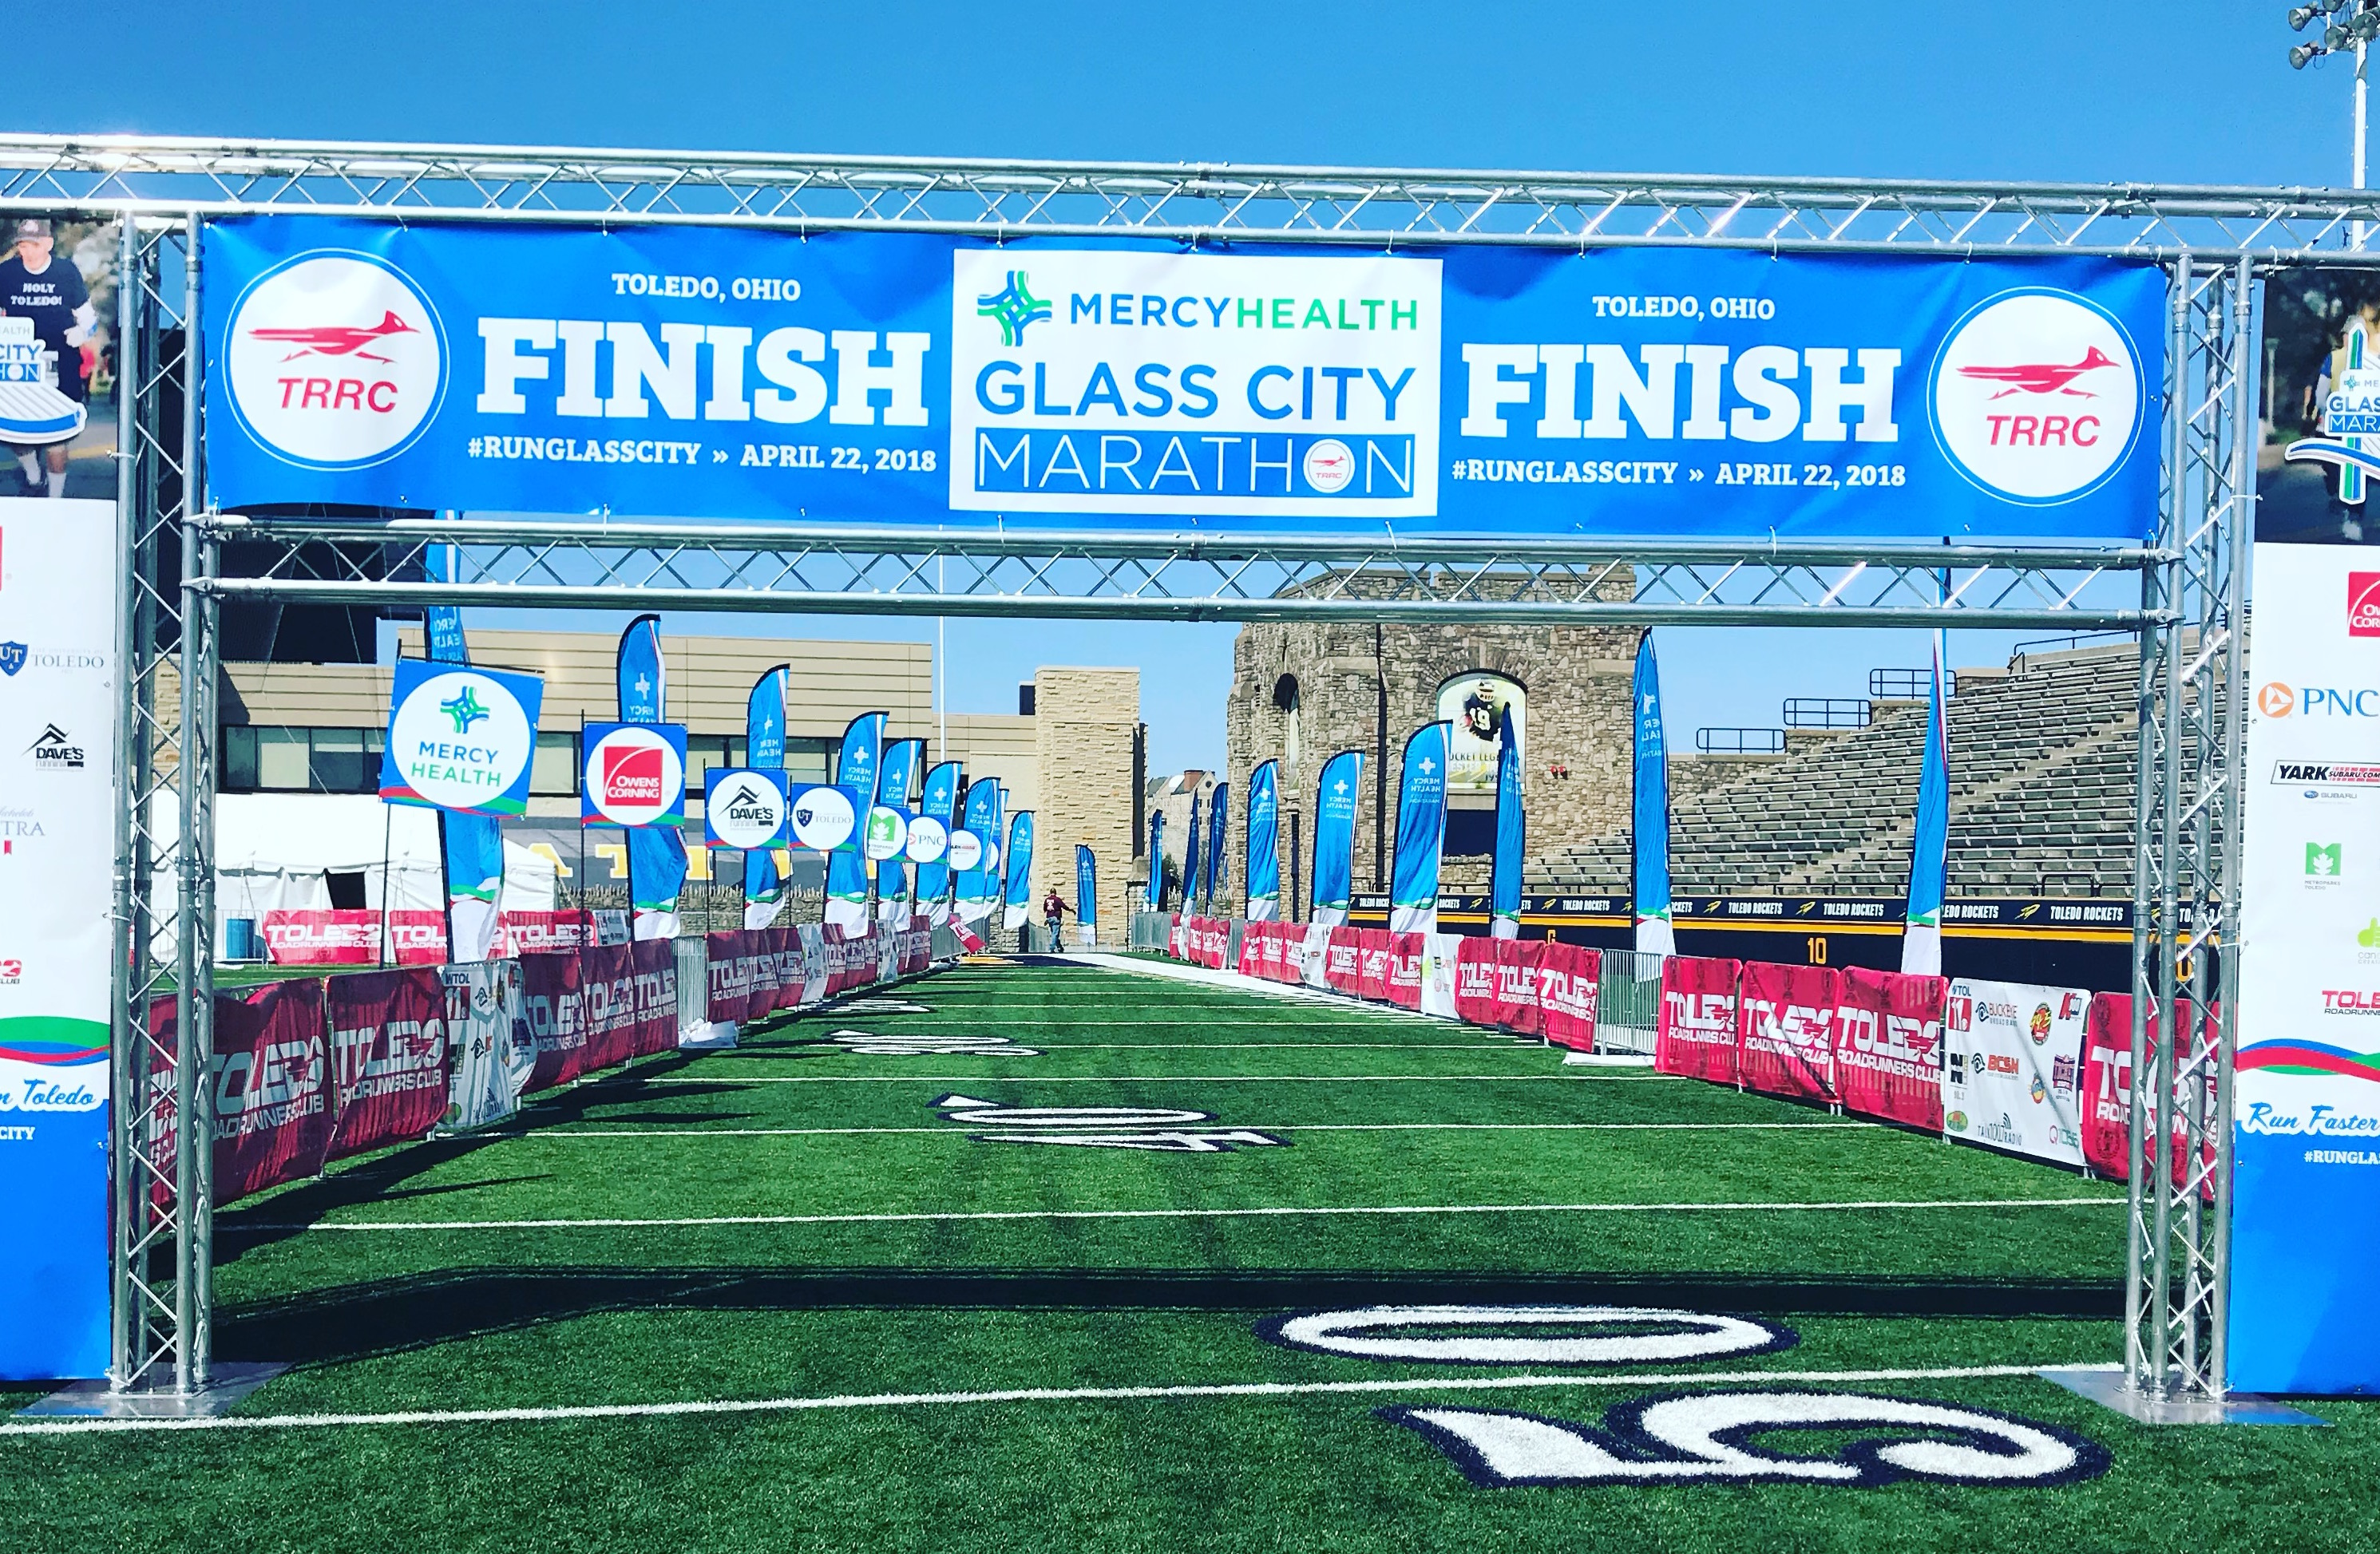 Great Opportunity for Community Partnership